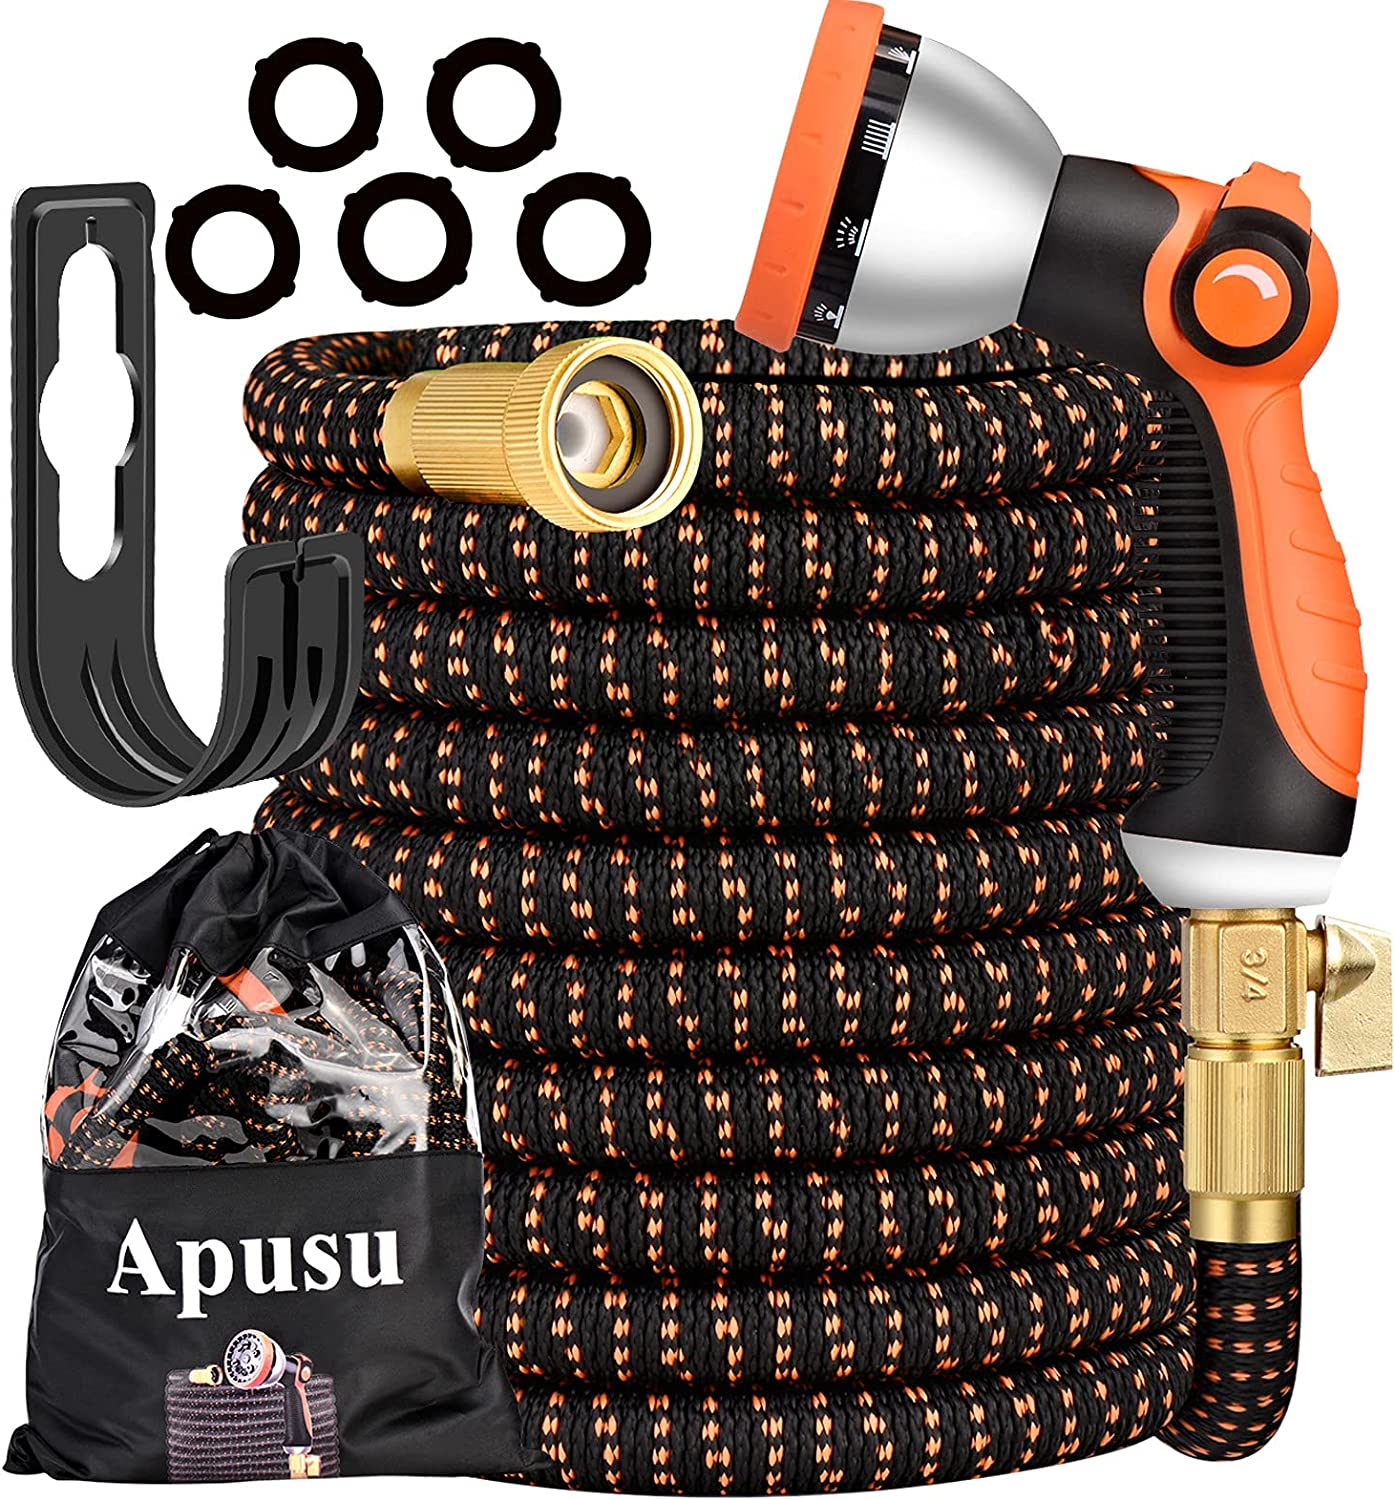 Apusu Expandable Hose 50ft- Lightweight Water Hose Durable- Flexible Retractable Garden Hose Pipe with 3/4 Brass Fitting(No Leaking)